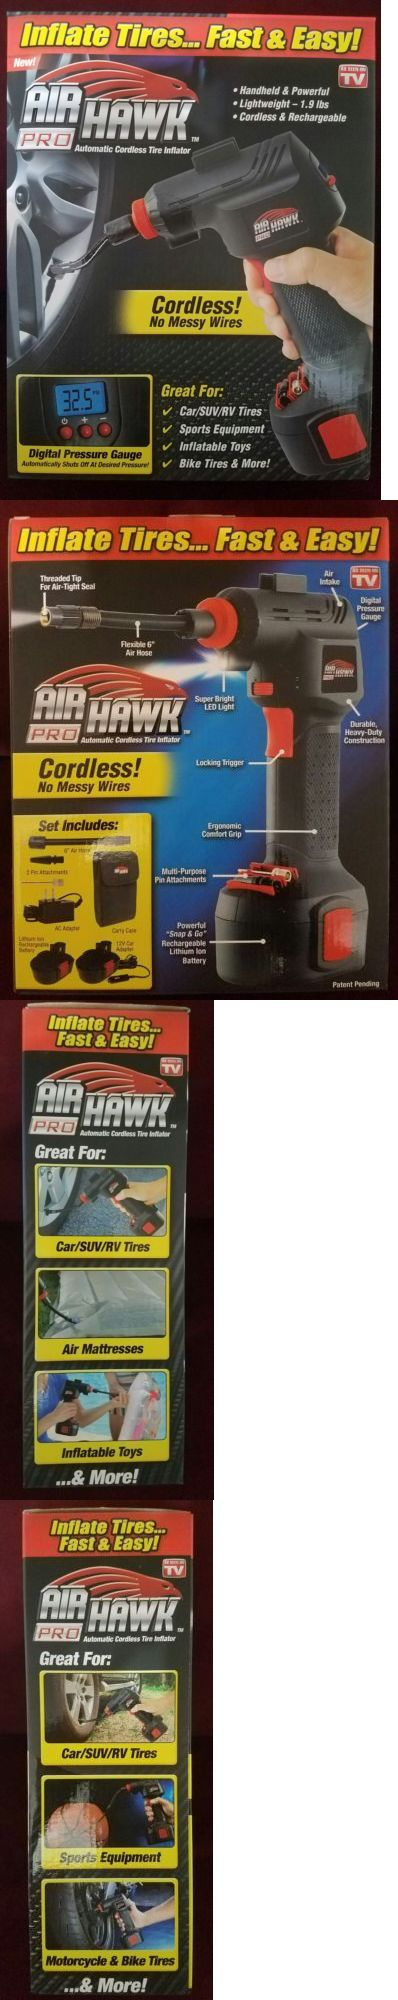 Air Compressors 30506: New In Box Air Hawk Pro Cordless Portable Air Compressor Tire Inflator Airhawk ! -> BUY IT NOW ONLY: $60 on eBay!